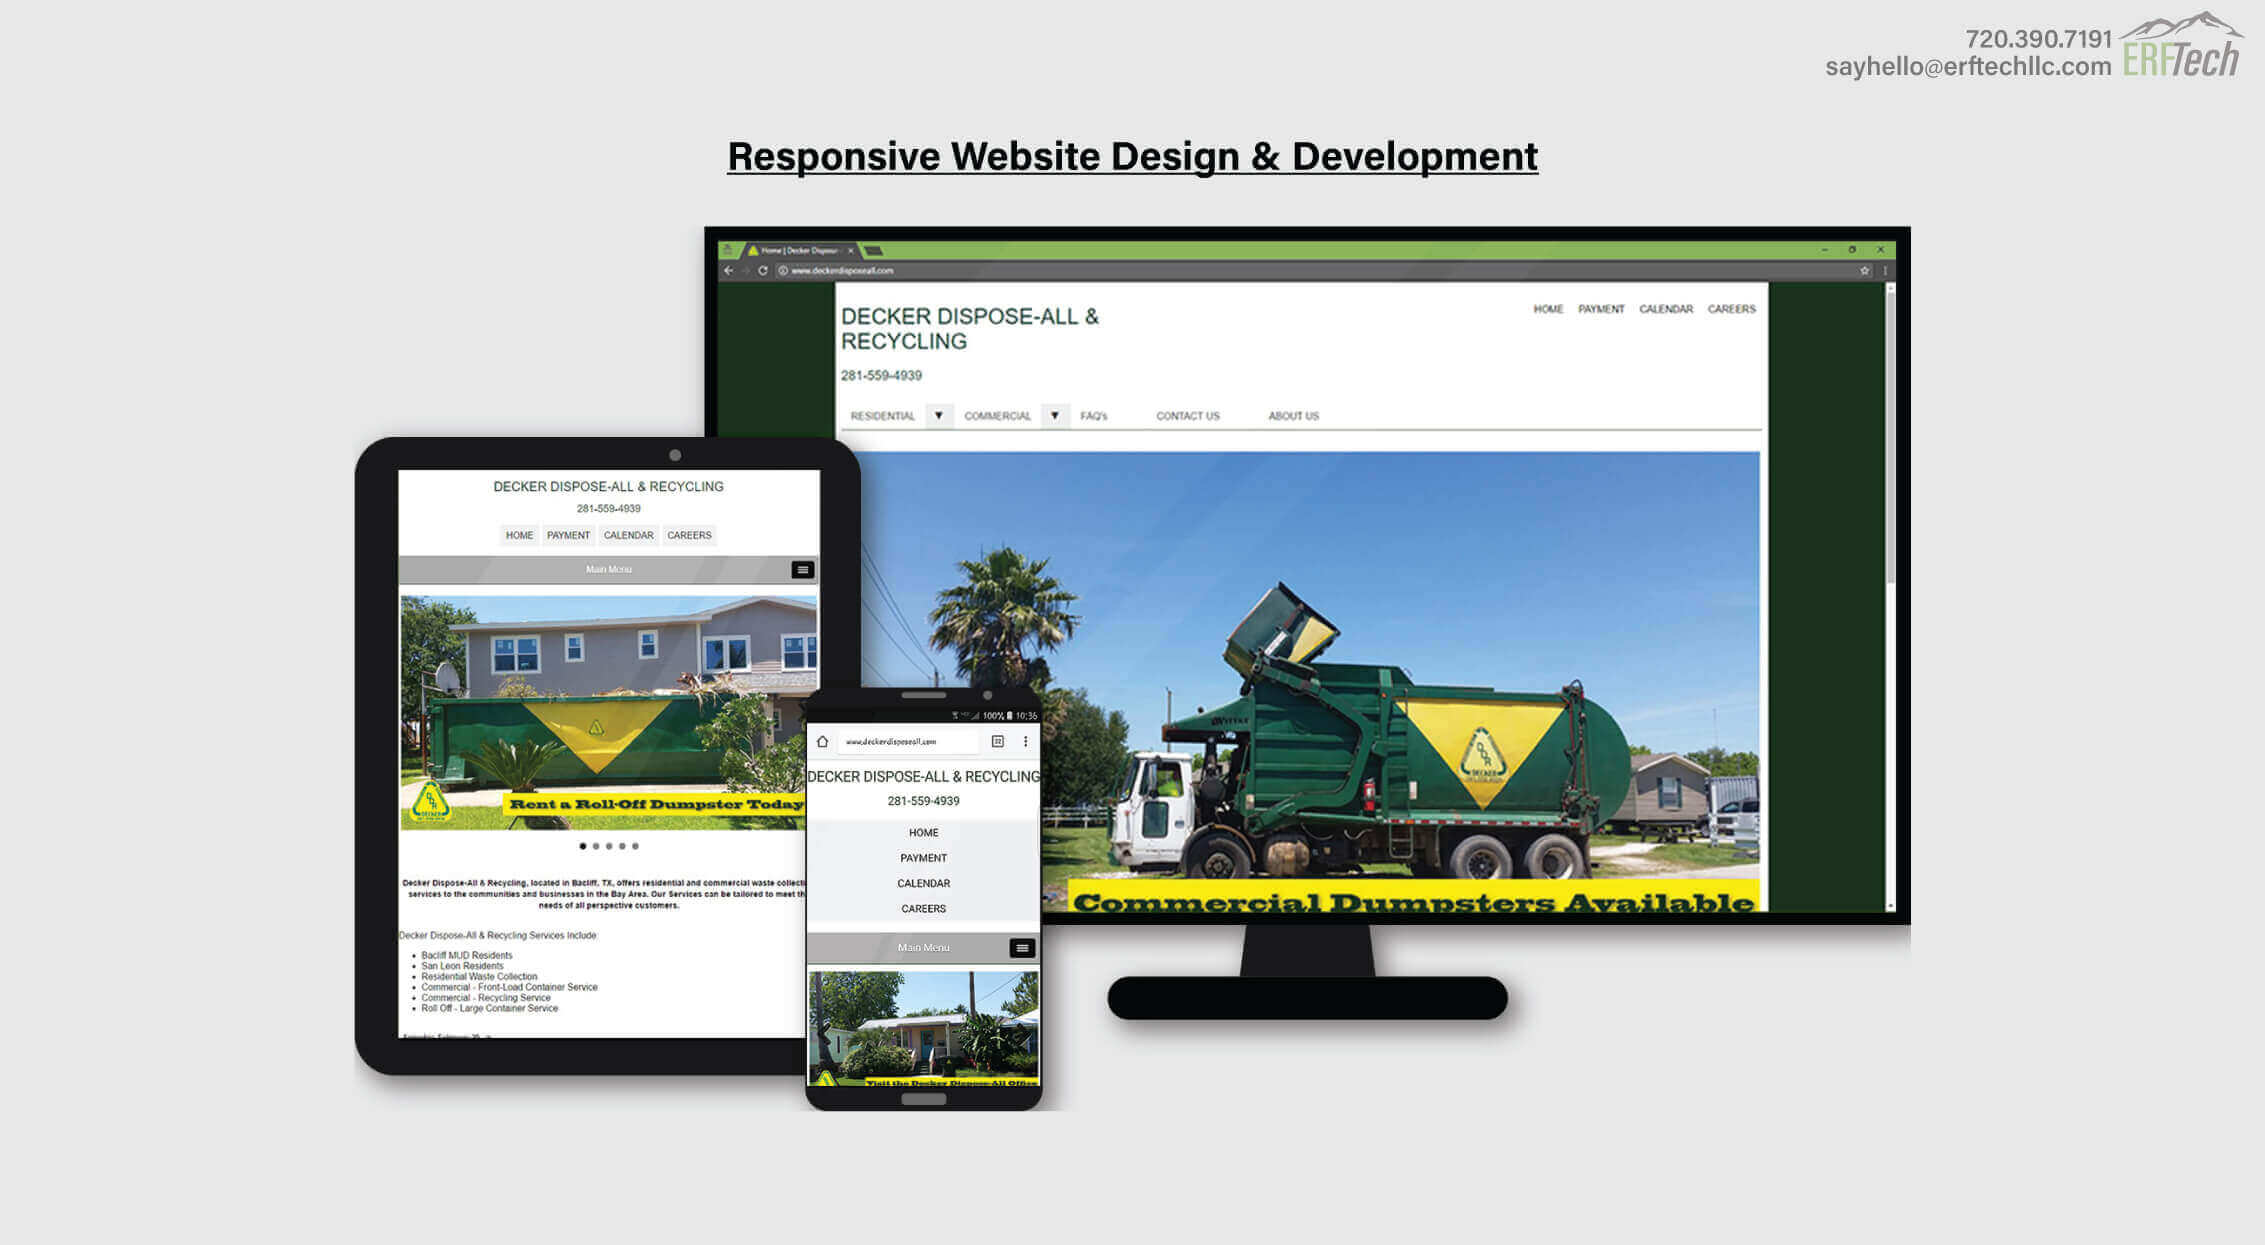 Website Management for Decker Dispose-All & Recycling in Bacliff, TX